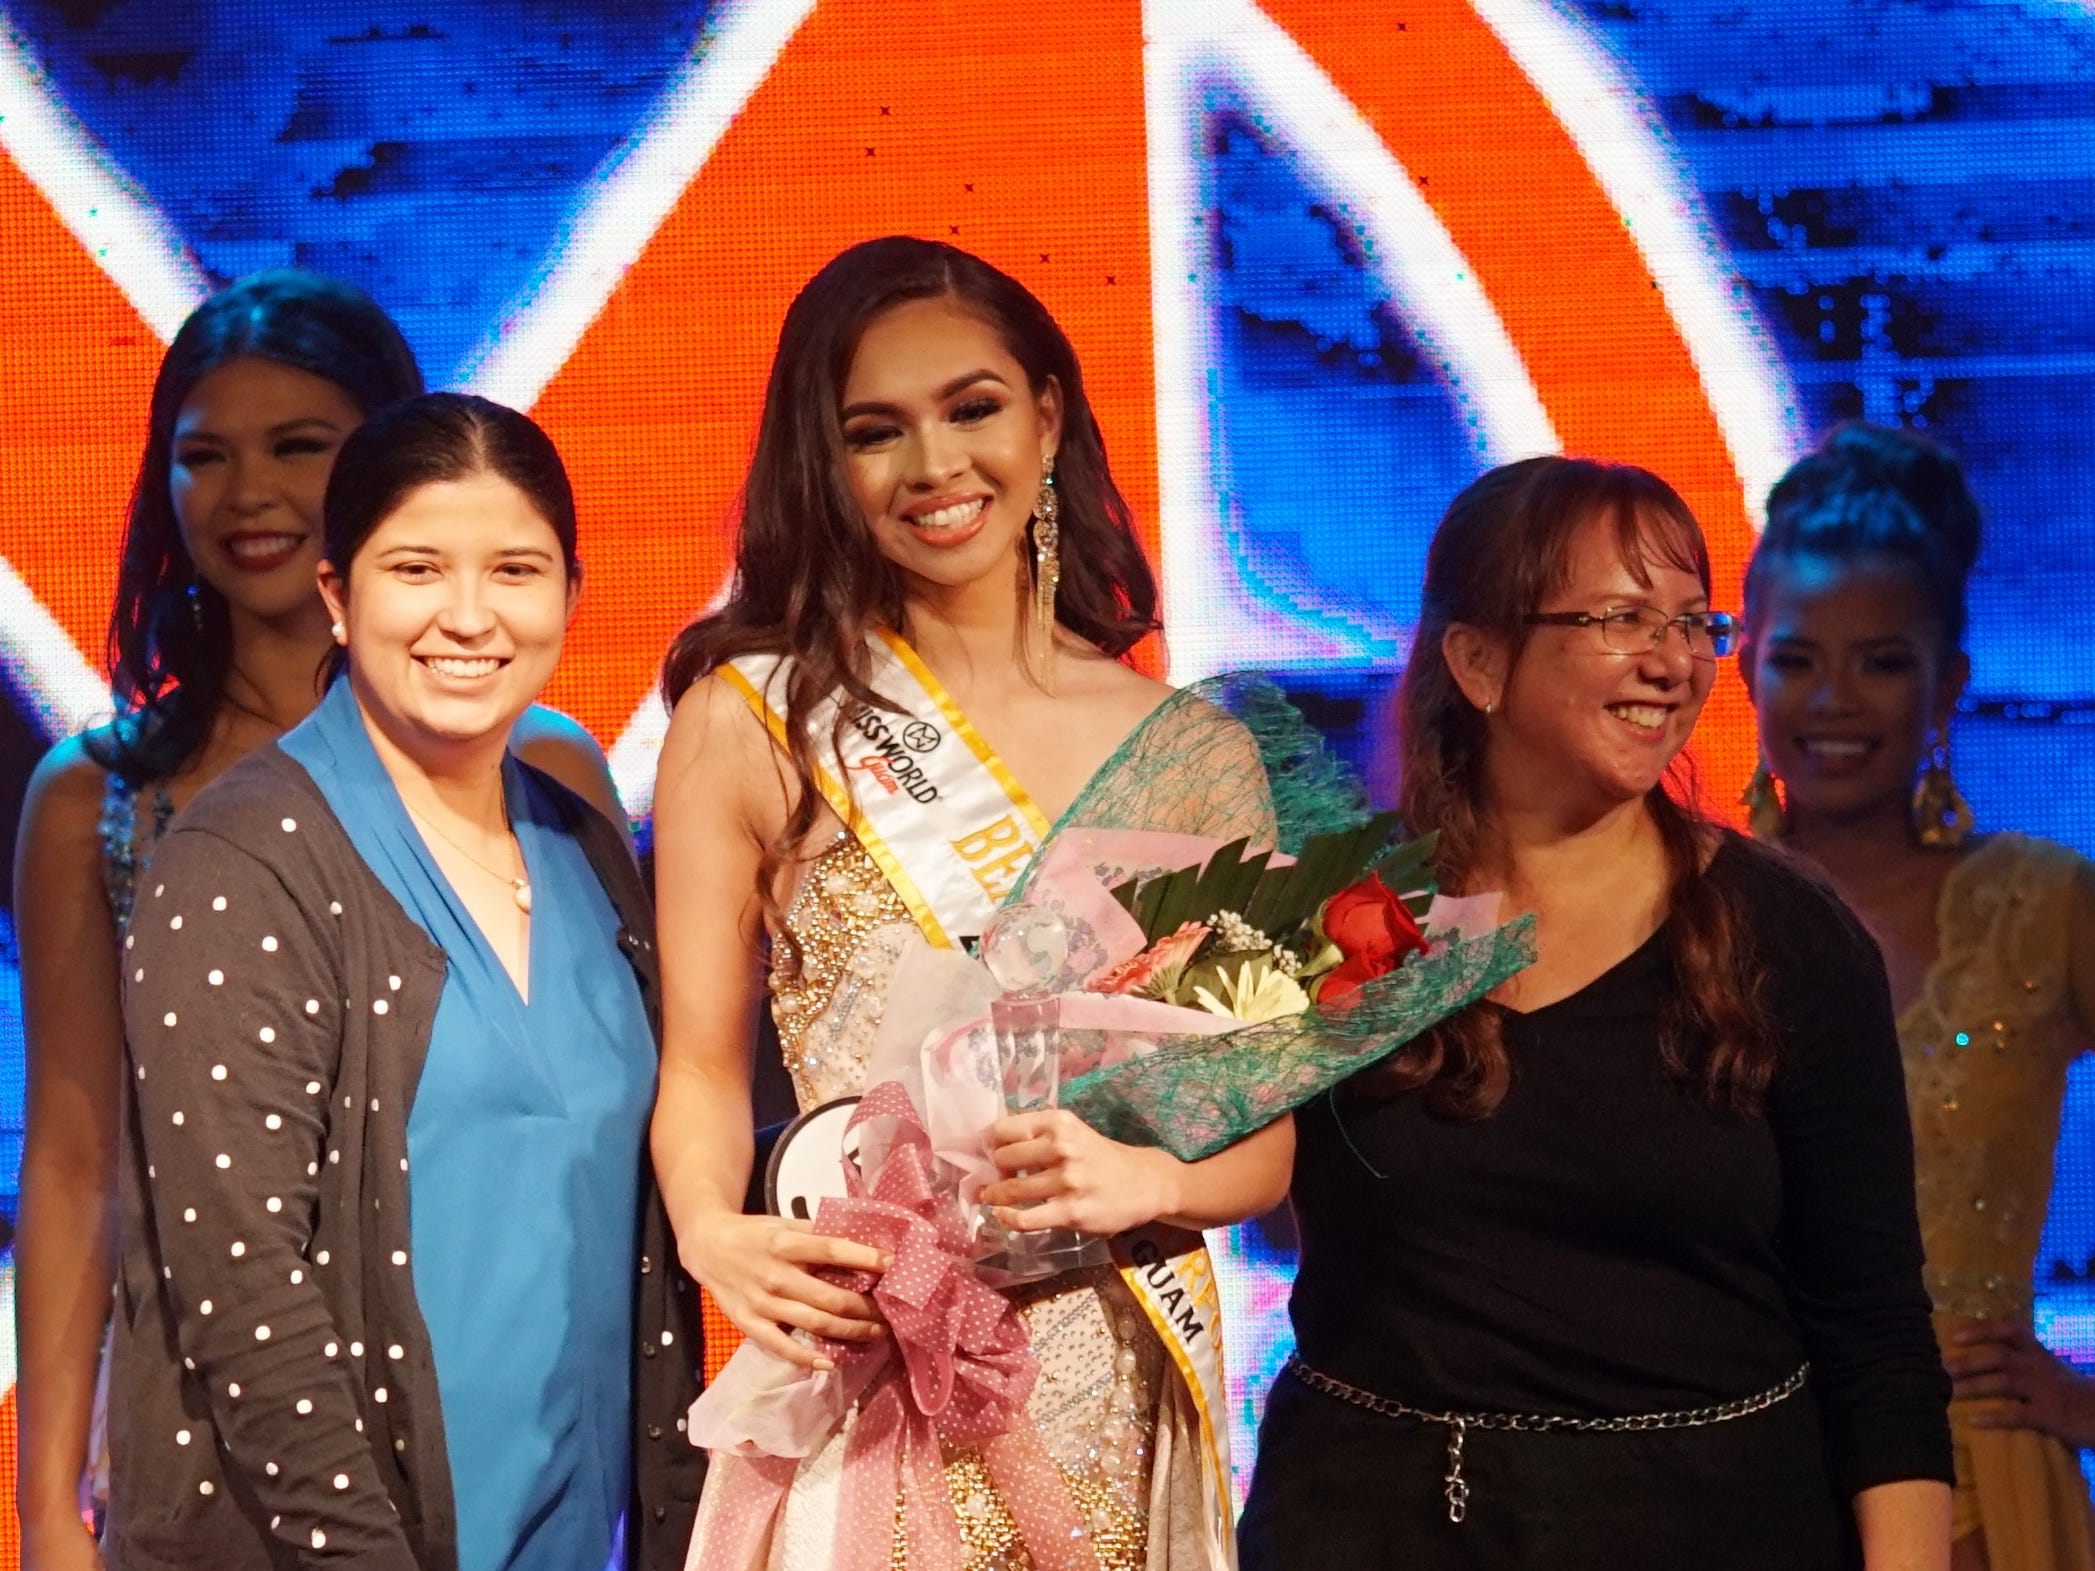 Contestant #5 Cyndal Abad, 18, from Dededo, wins the Beauty with a Purpose award at the 2018 Miss World Guam pageant held at Sheraton Laguna Guam Resort.